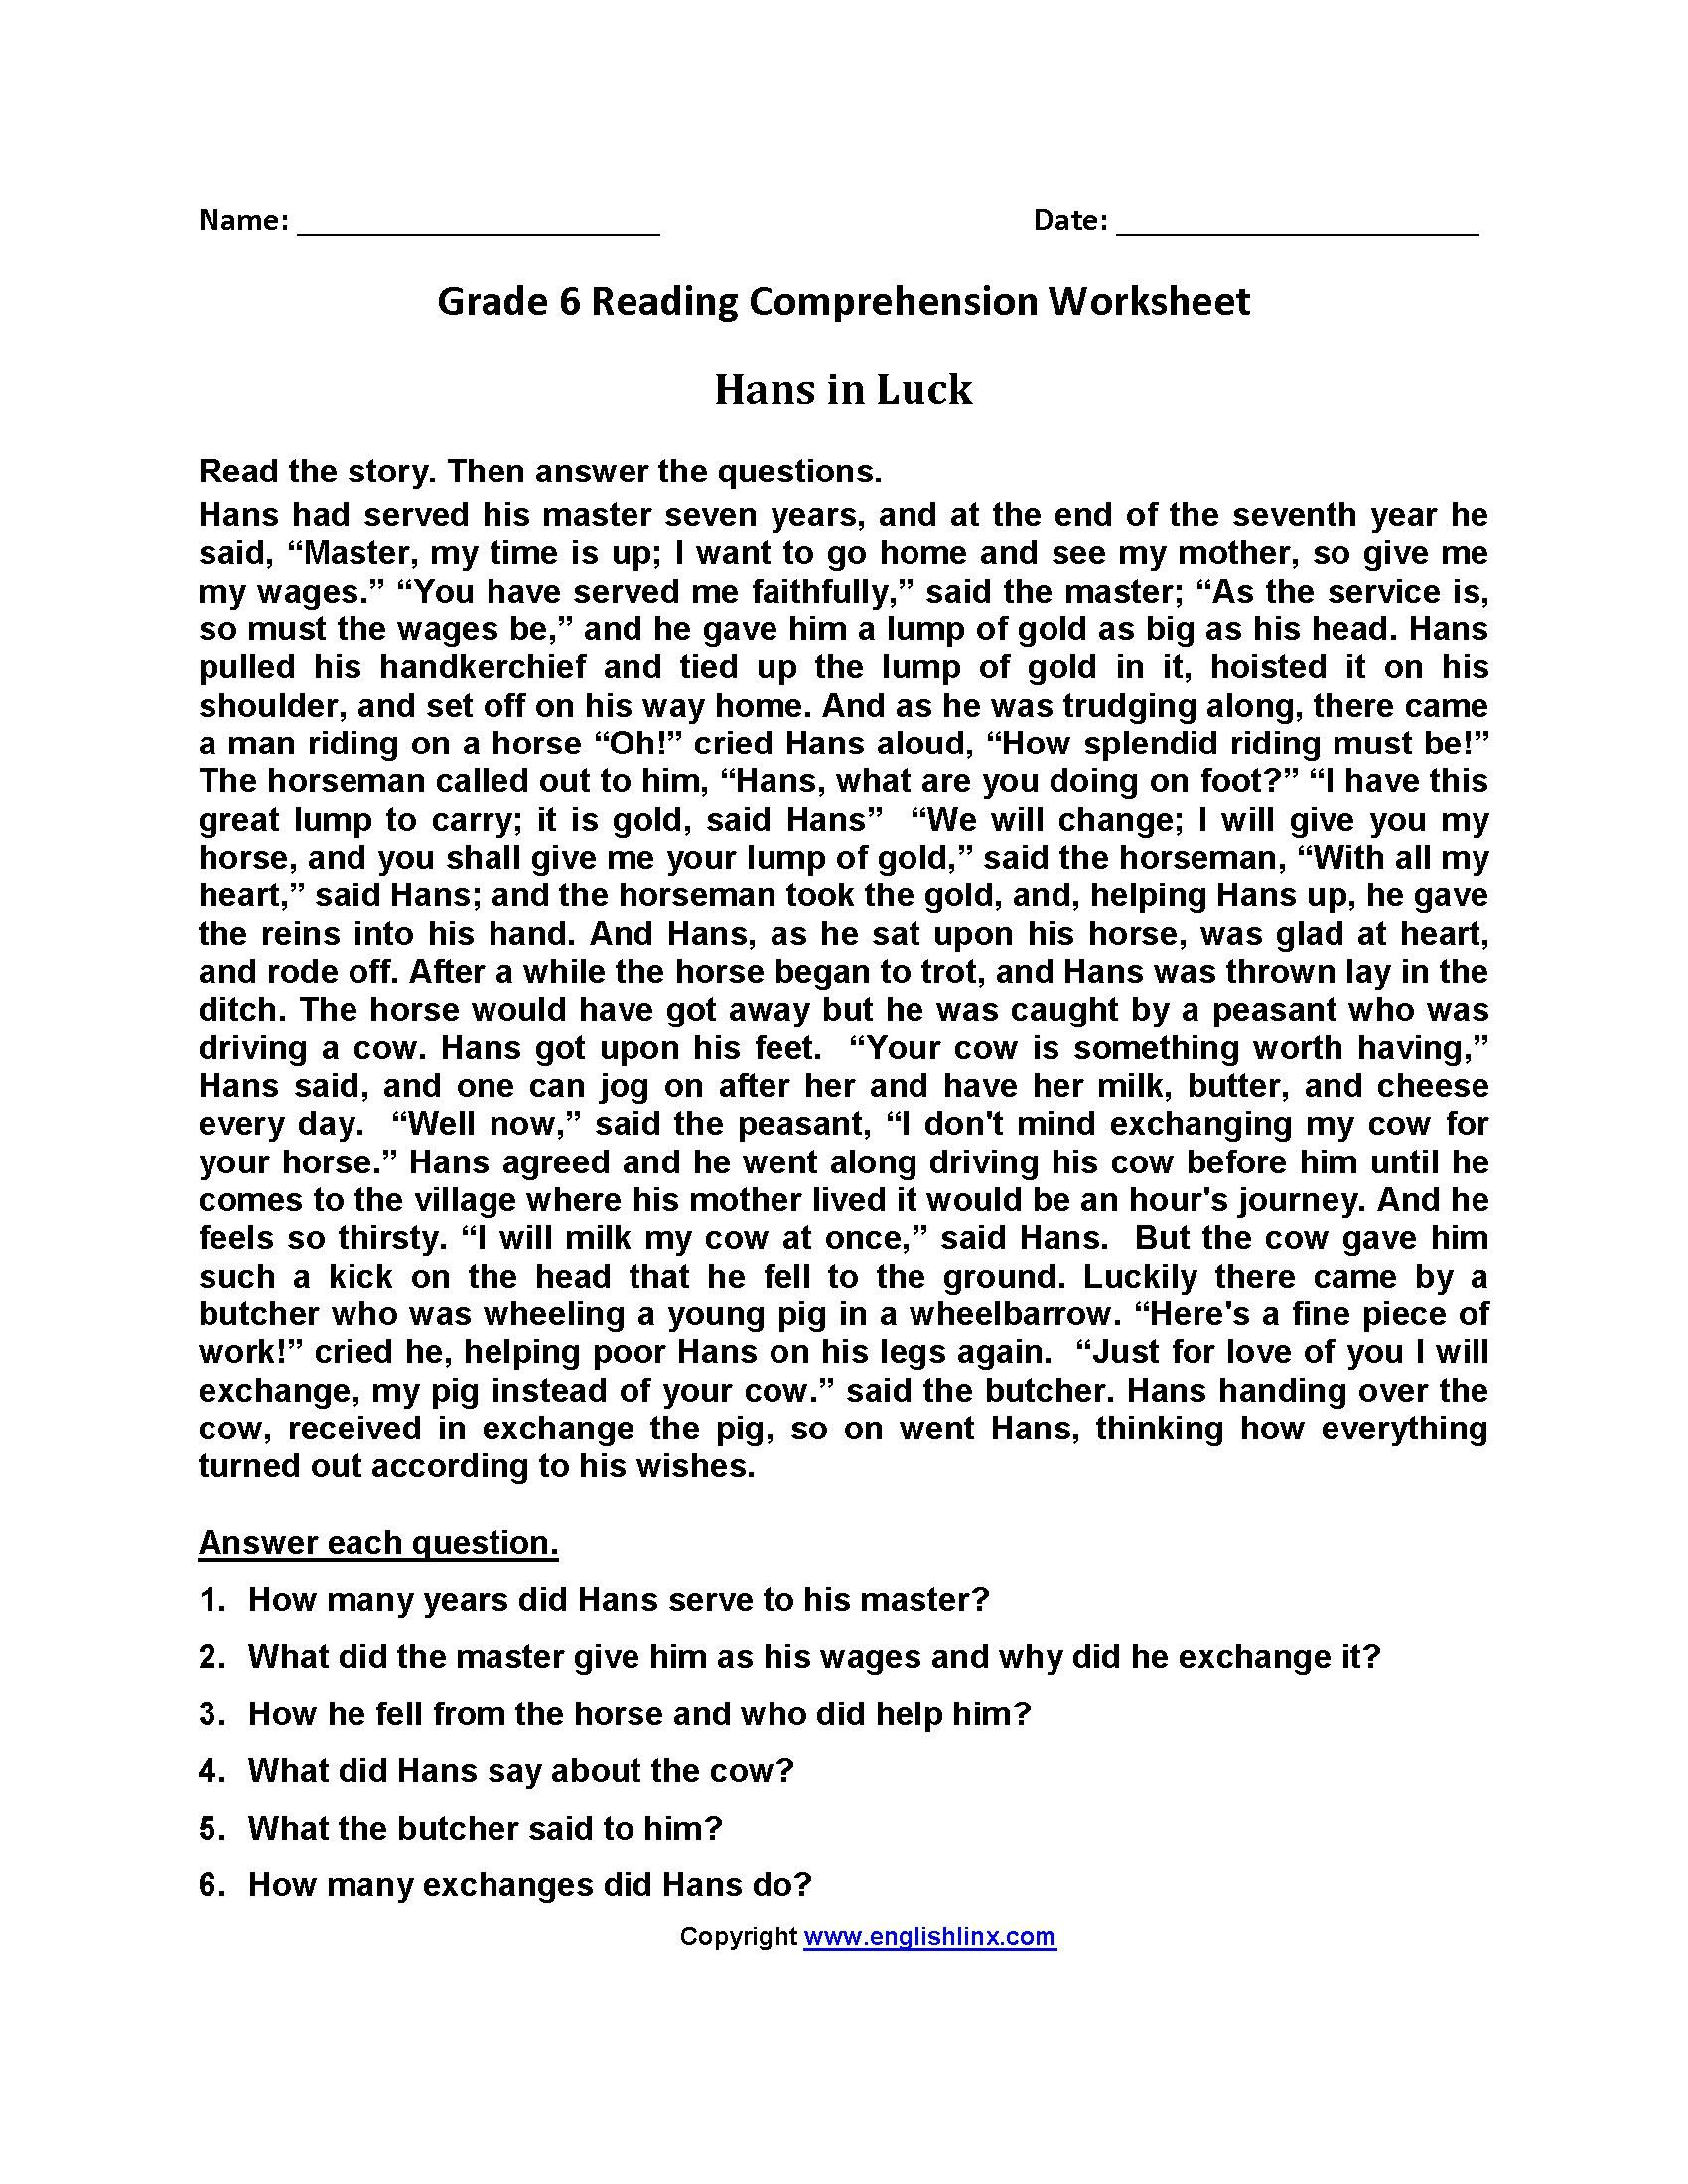 Free Printable Reading Worksheets For Grade 6 In